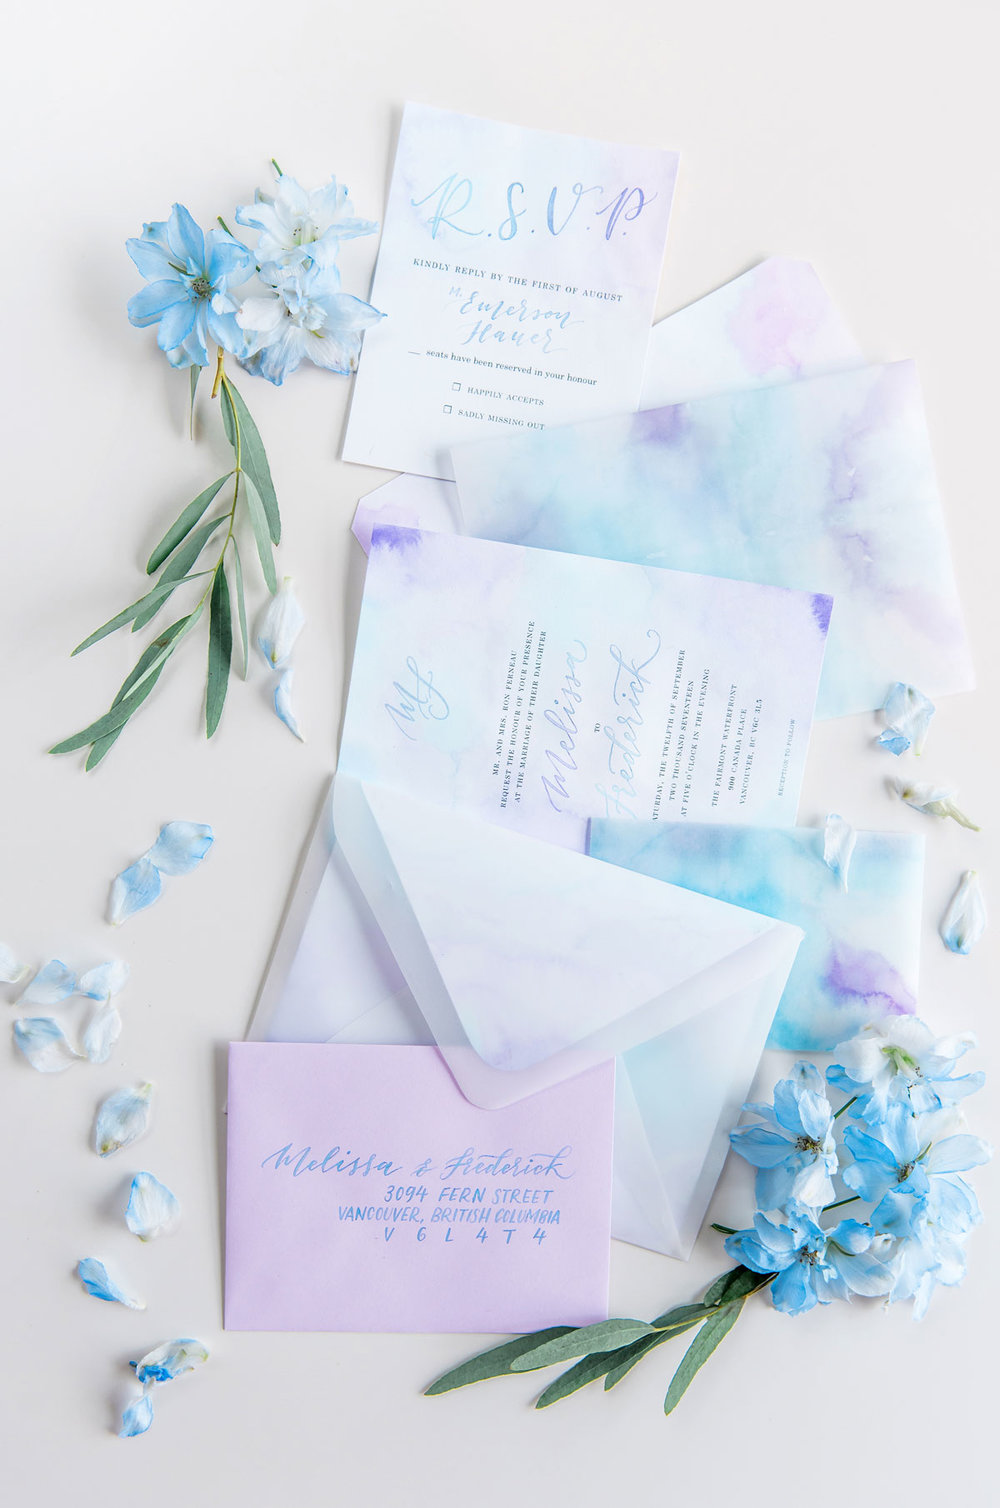 dloveaffair_invitationsuite_calligraphy_watercolor.jpg